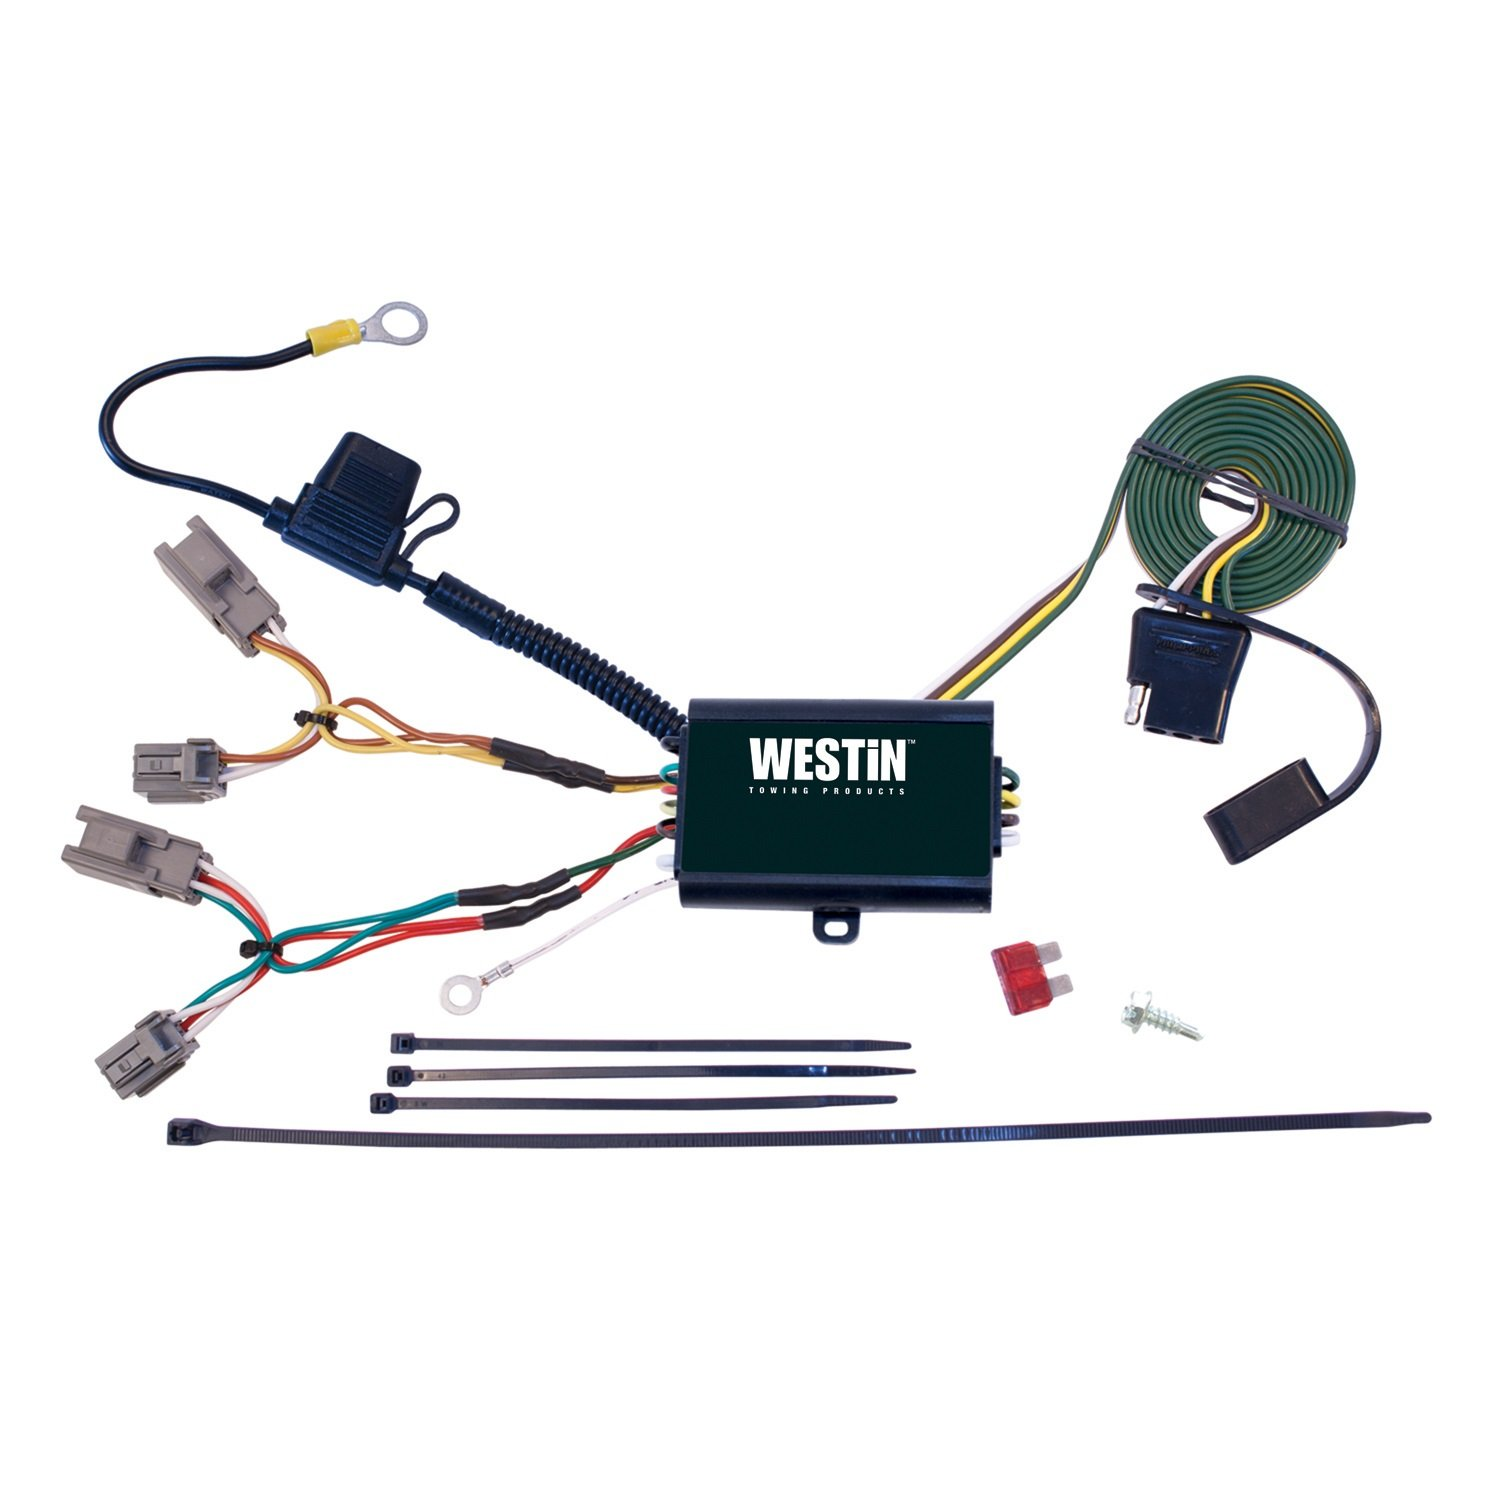 Westin 65-66565 T-Connector Harness